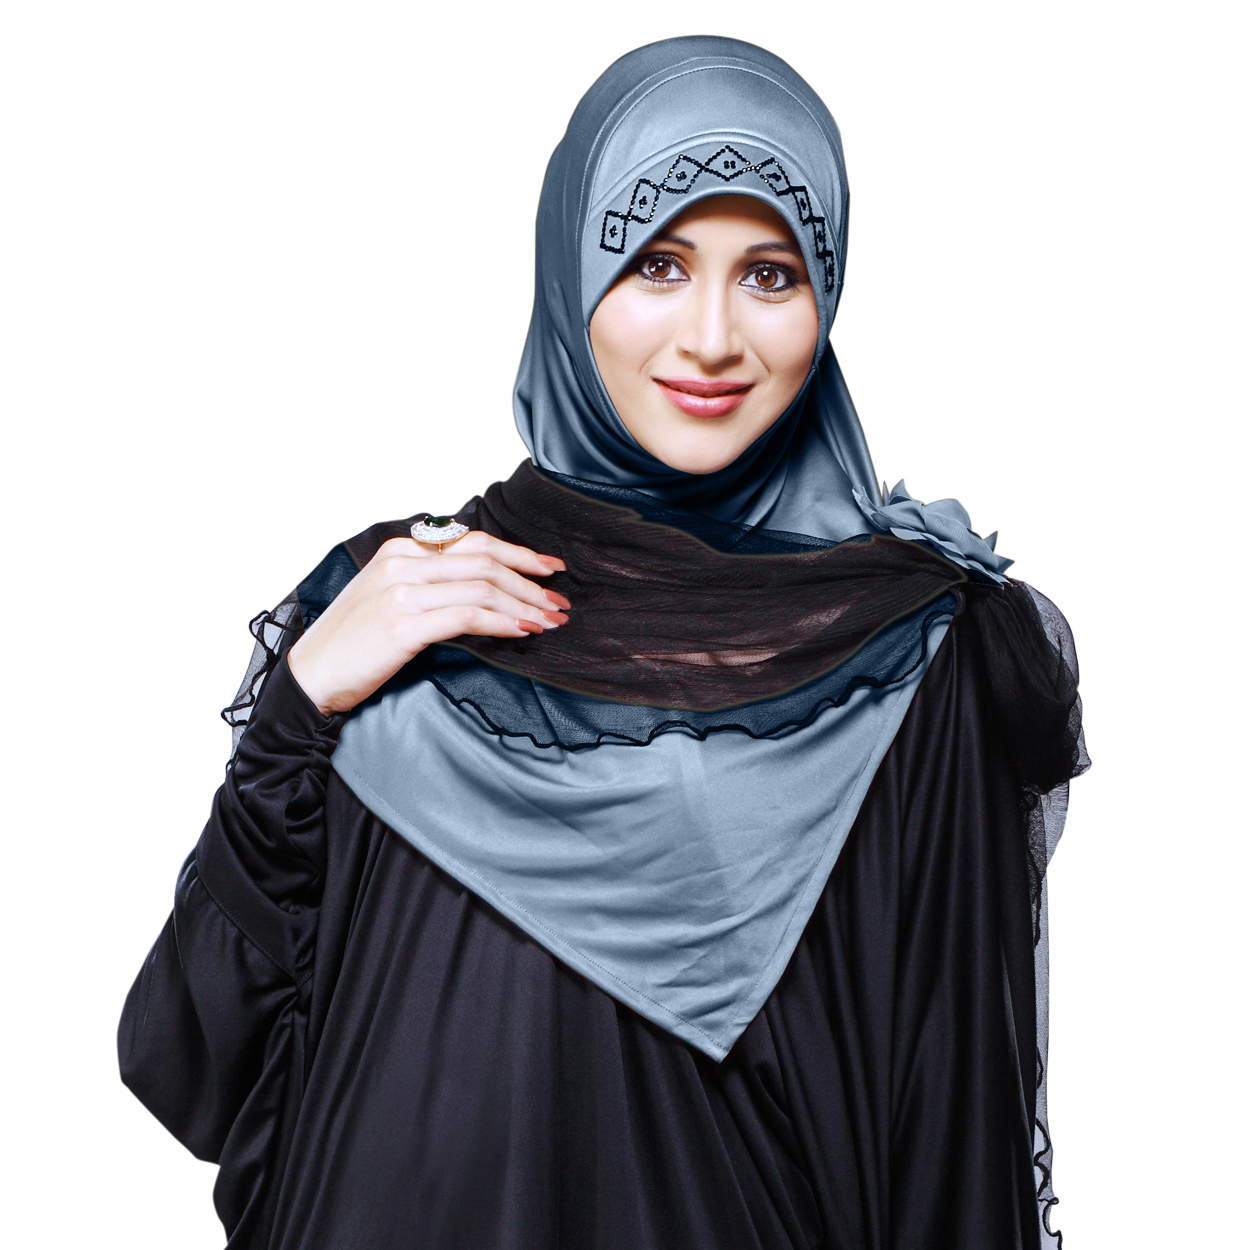 Ready to wear Instant hijab designed with rhine stone on cap additional black net included Zenora-grey-xl